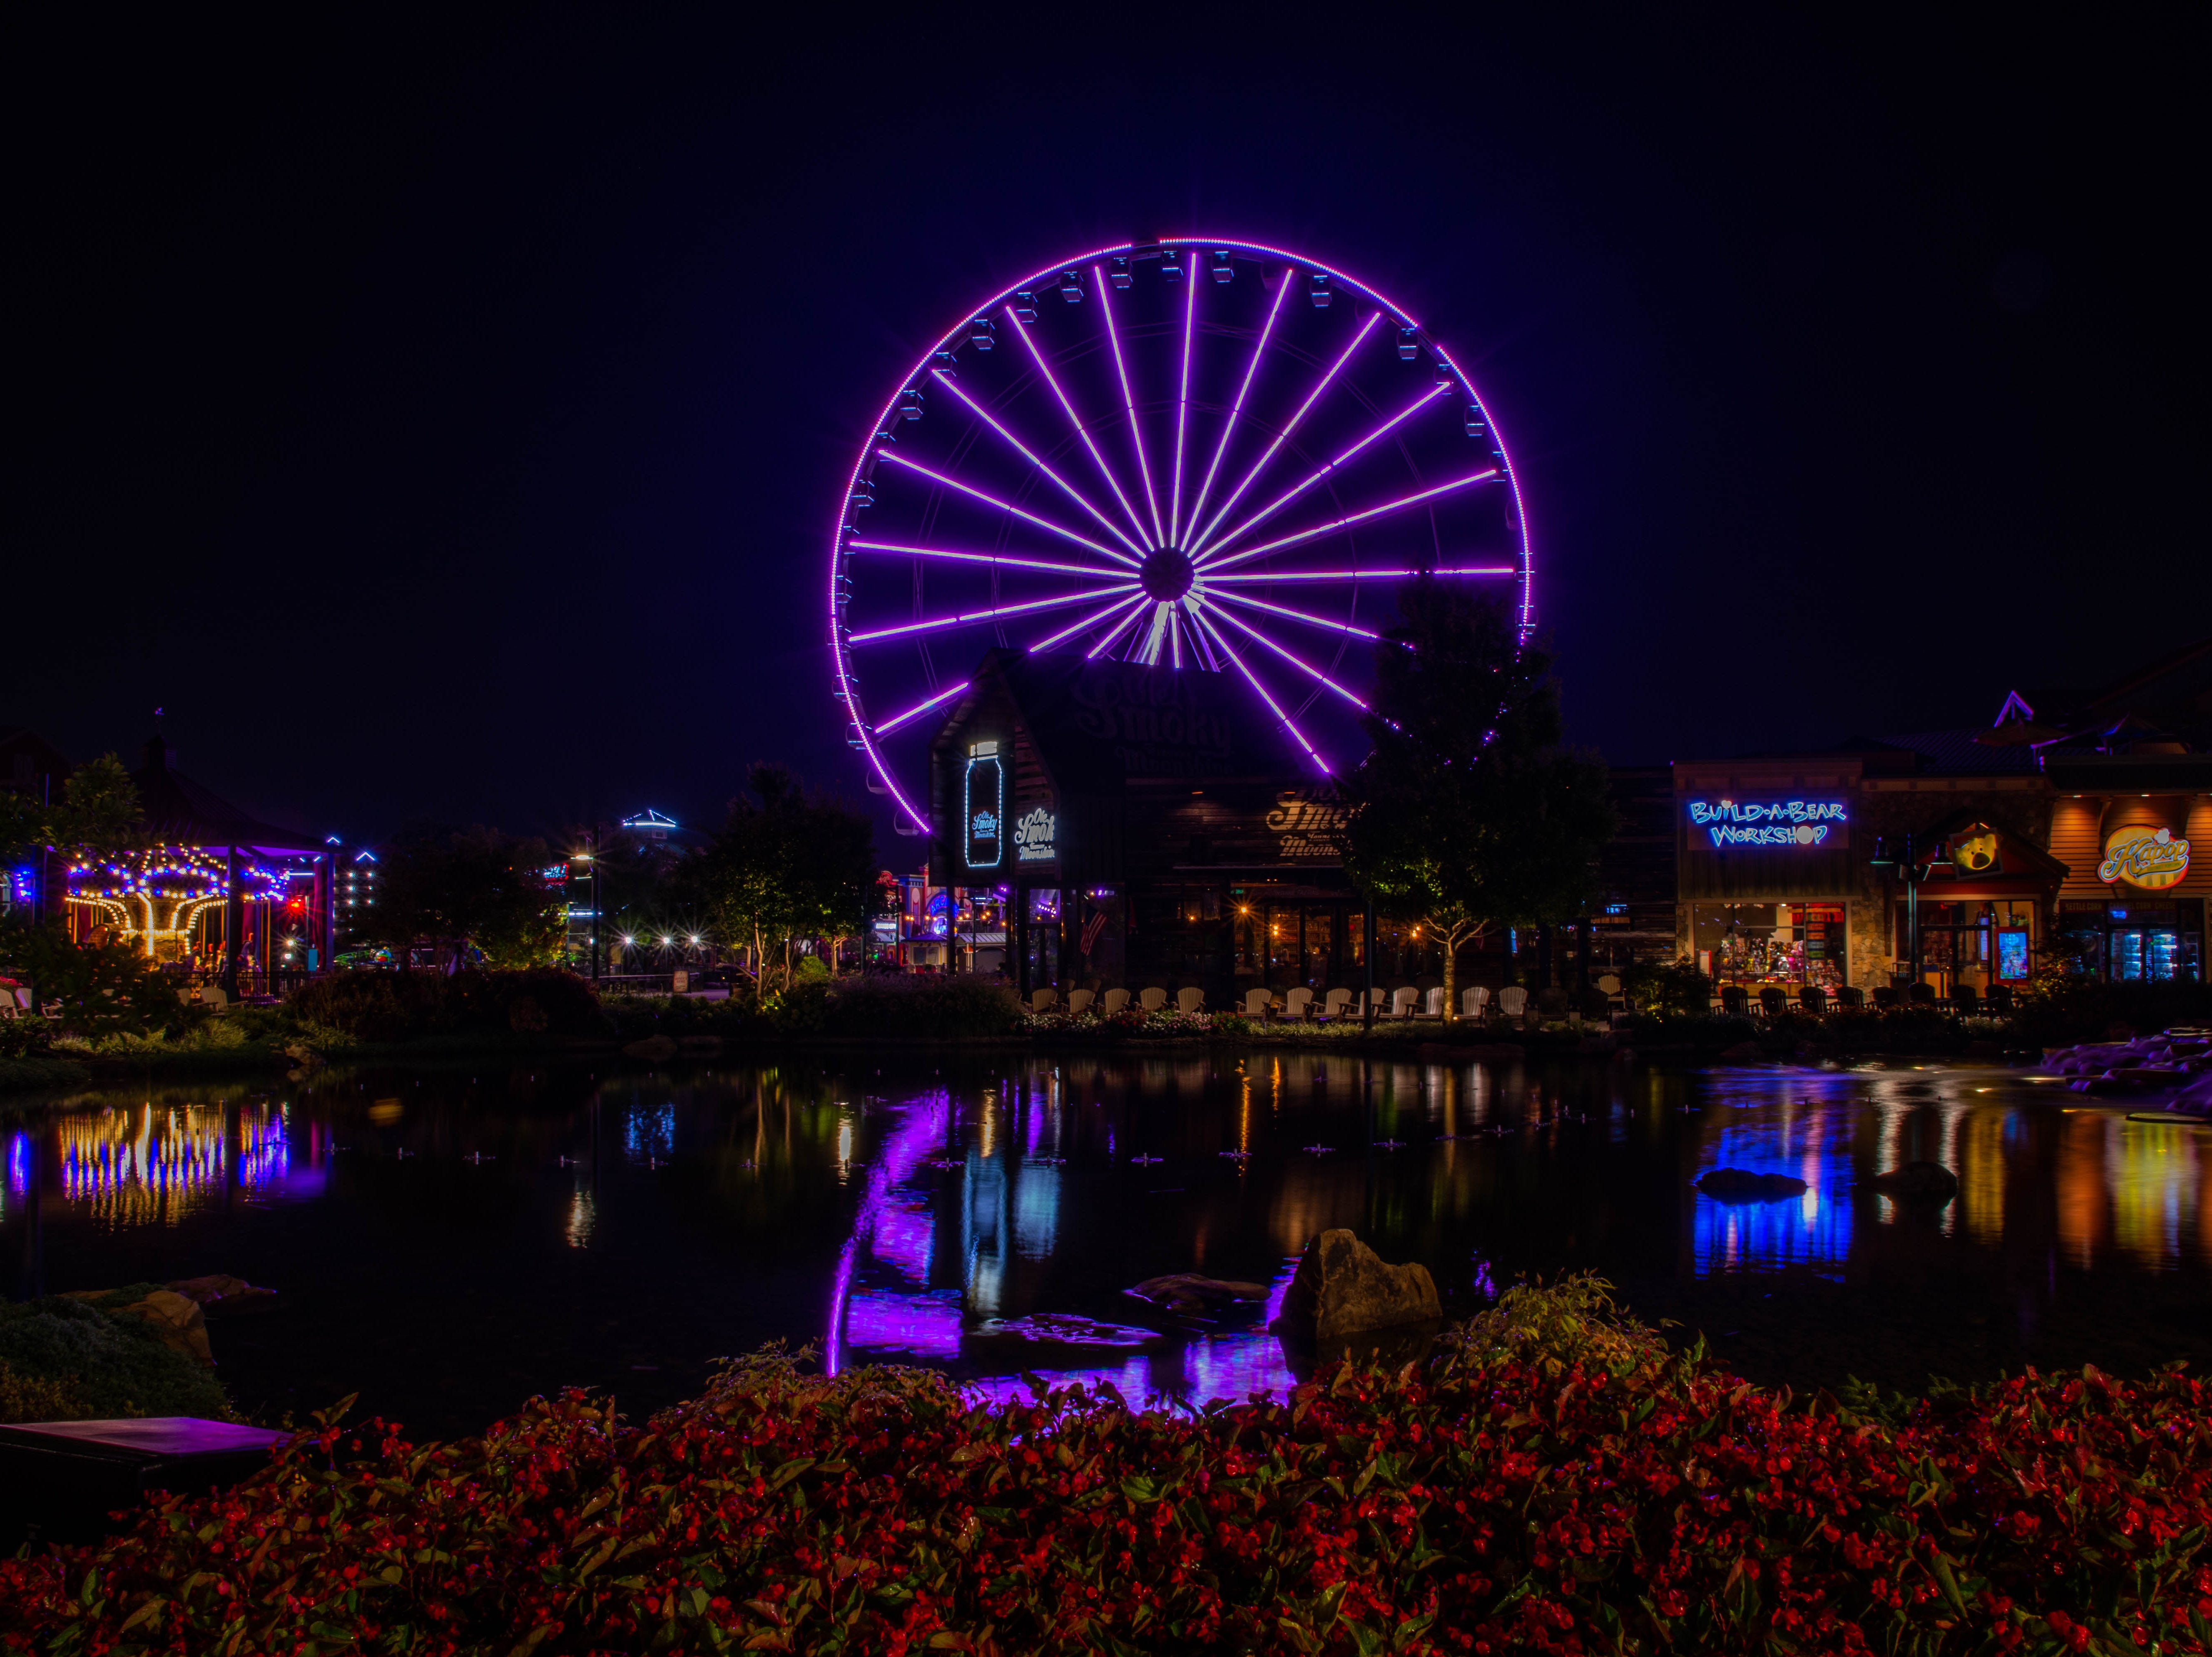 Lights reflect off the water at The Island in Pigeon Forge in Sevier County before sunrise on Monday, Aug. 27, 2018.